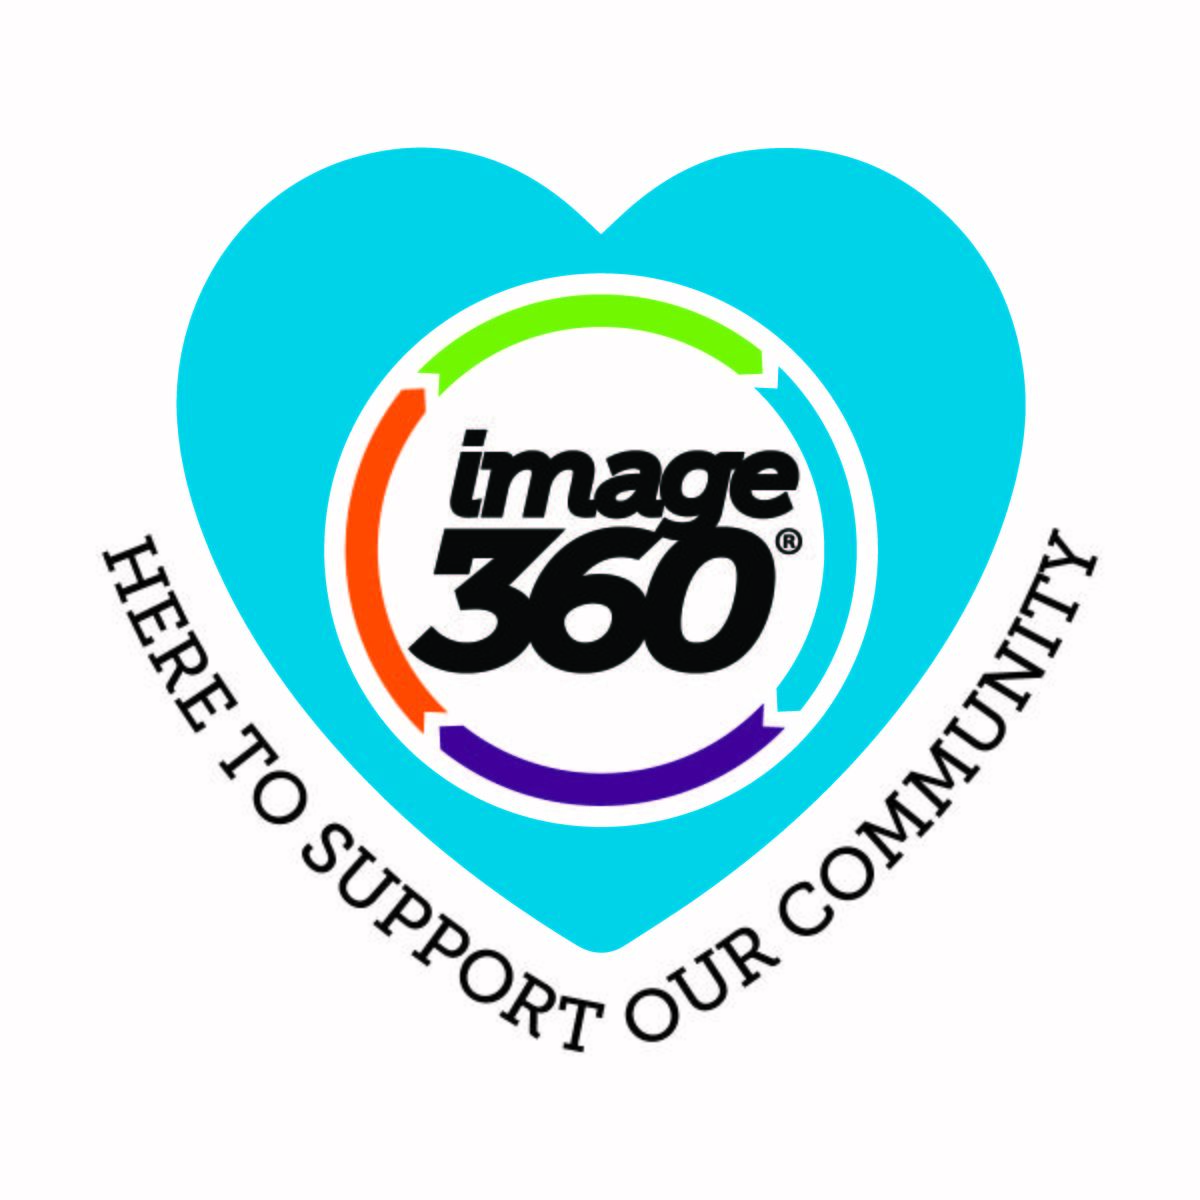 Image360 is Here to Support our Community